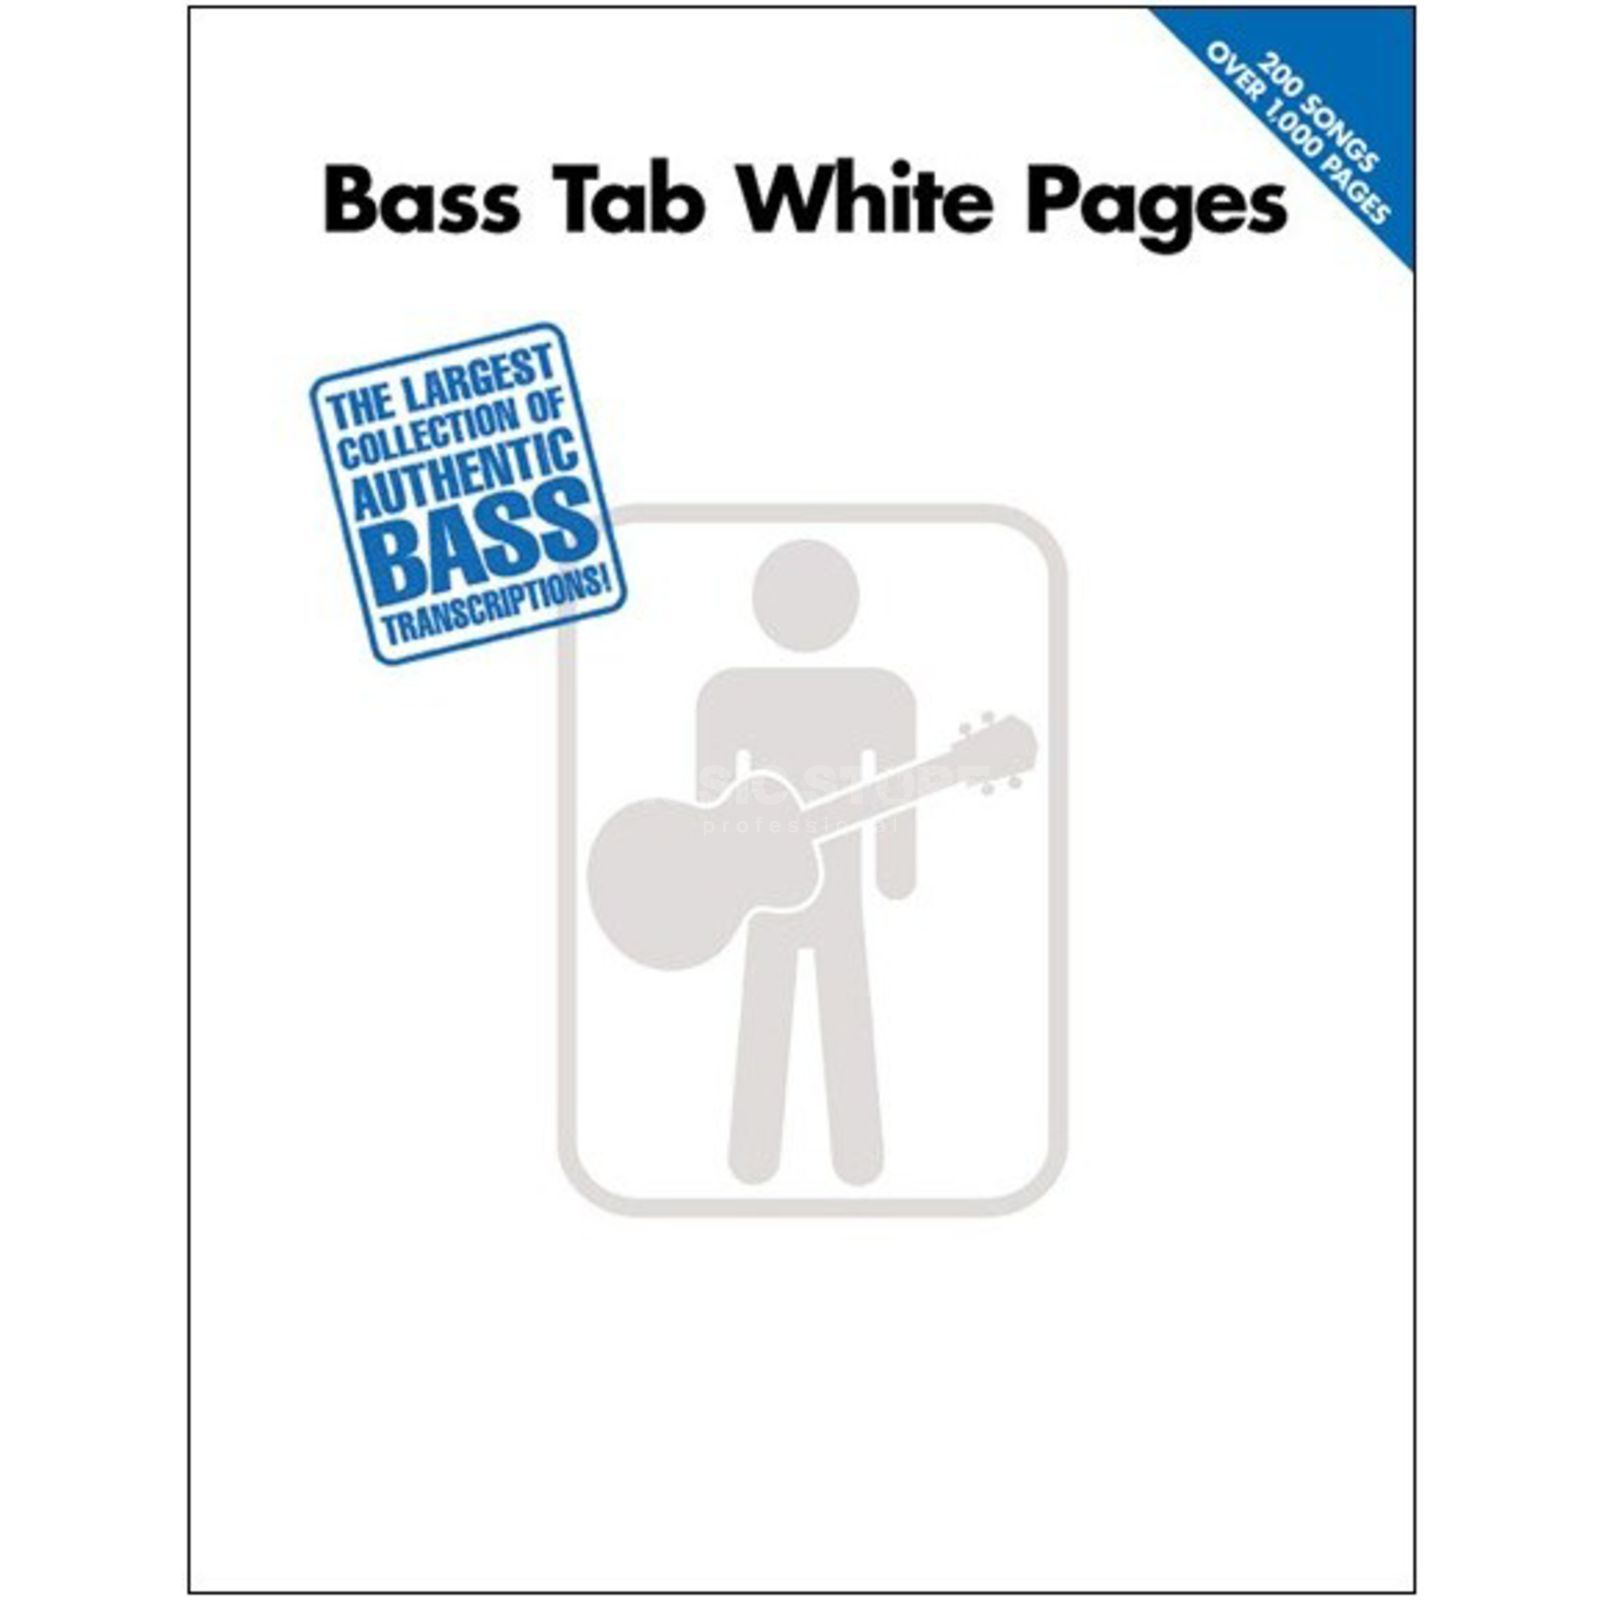 Hal Leonard Bass Tab White Pages Produktbild